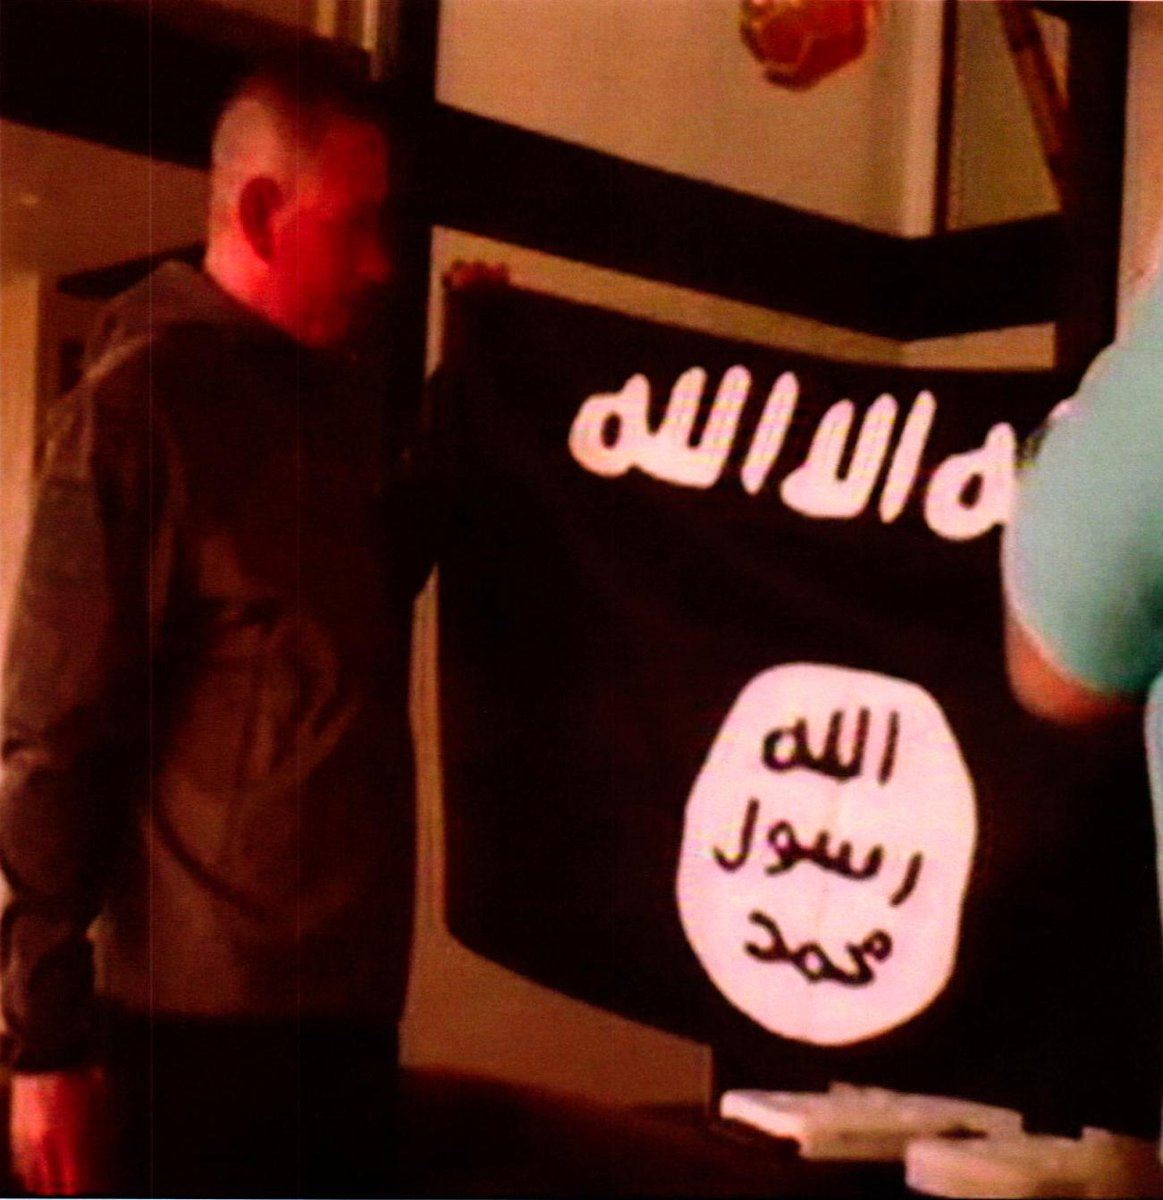 U.S. soldier who kissed ISIS flag pleads not guilty to supporting the militant group